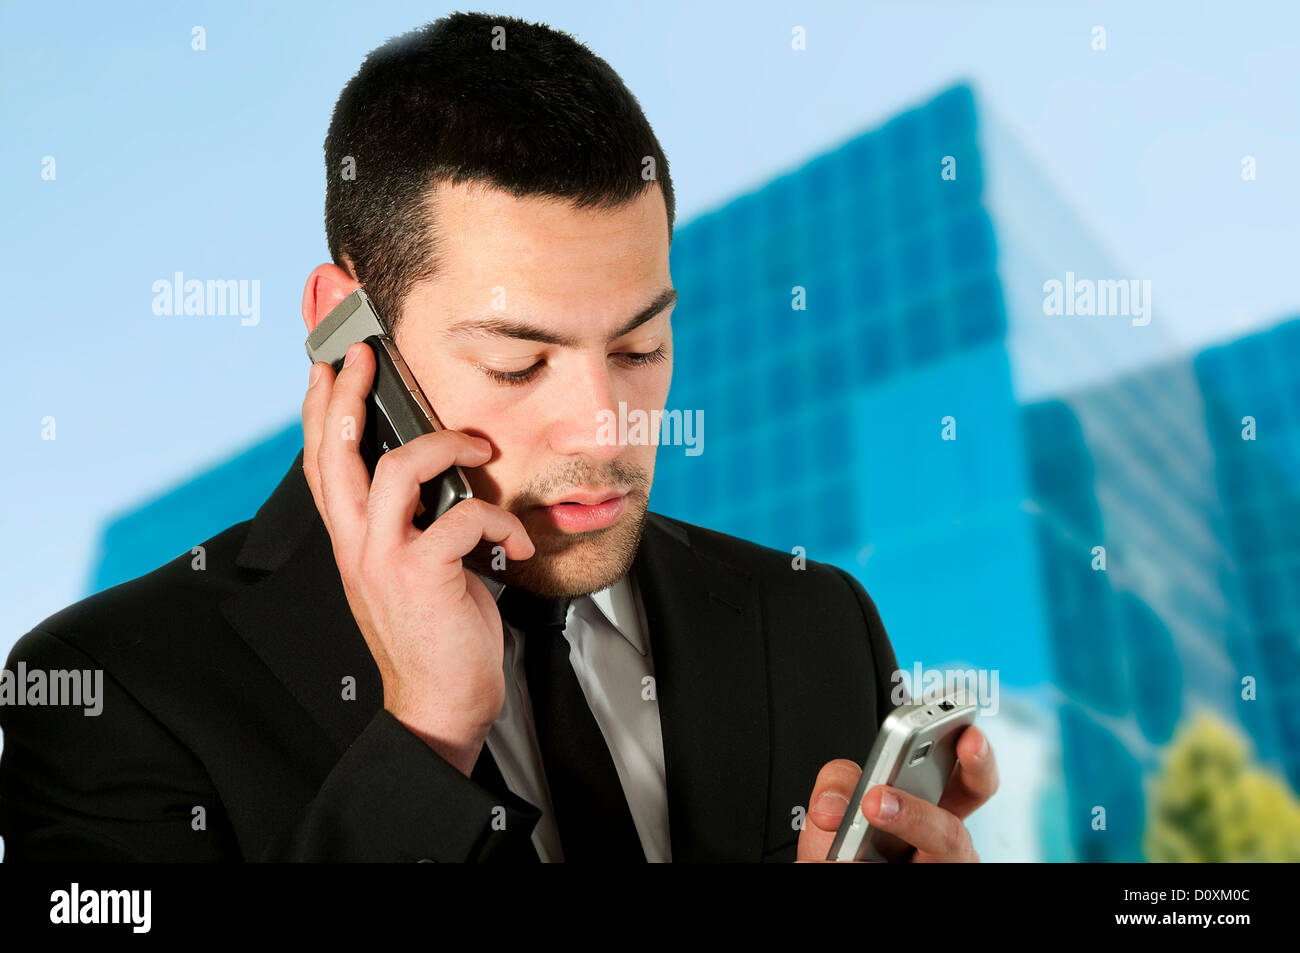 Young executive using two mobile phones. - Stock Image